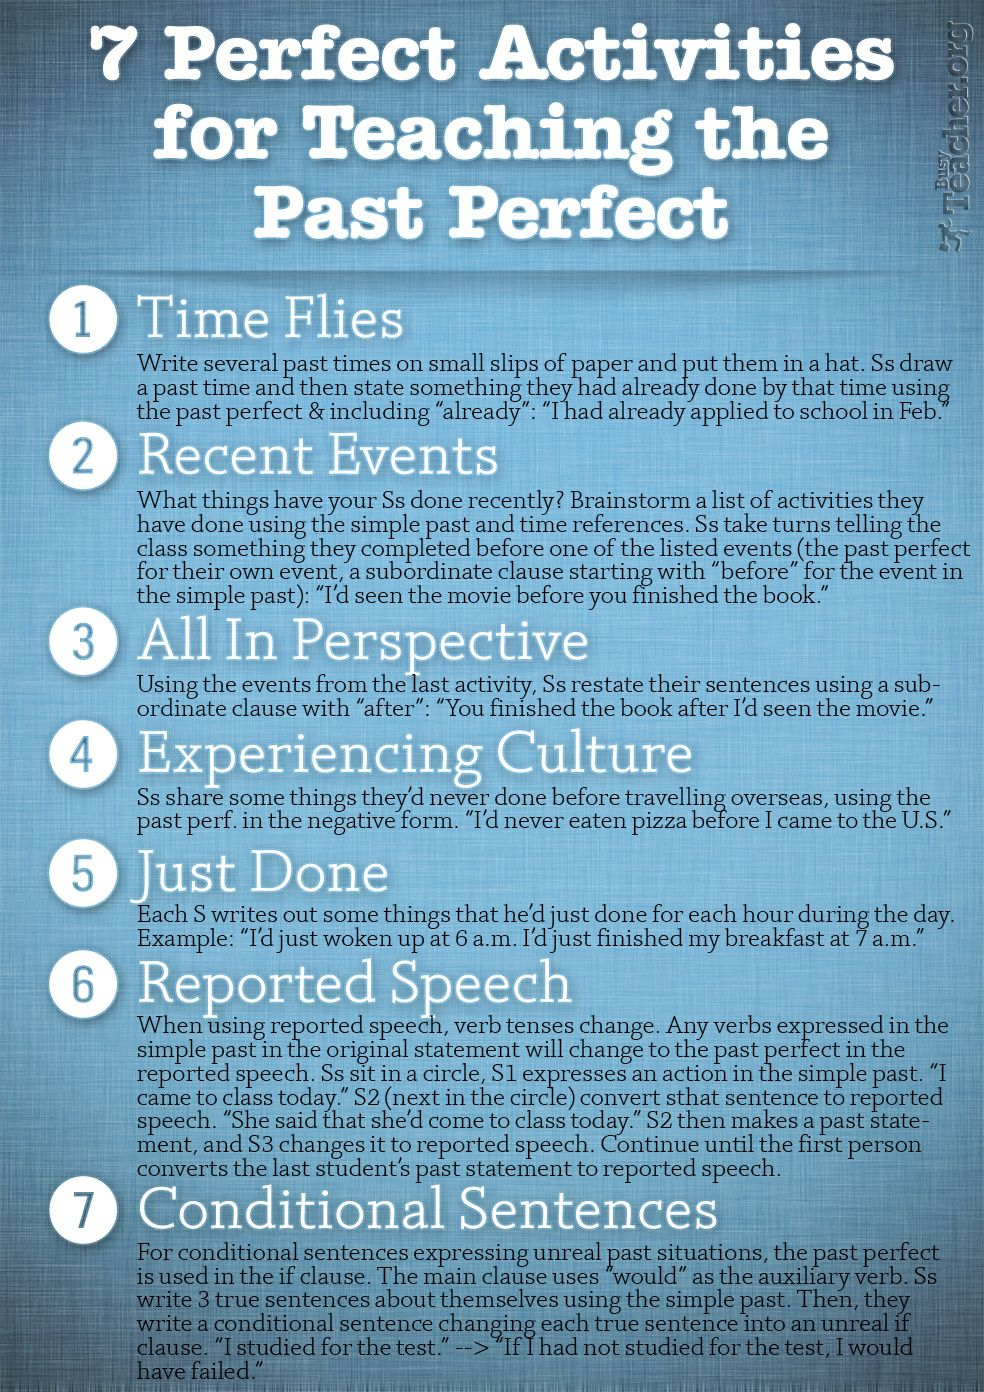 7 Perfect Activities to Teach the Past Perfect | Academic Skills ...